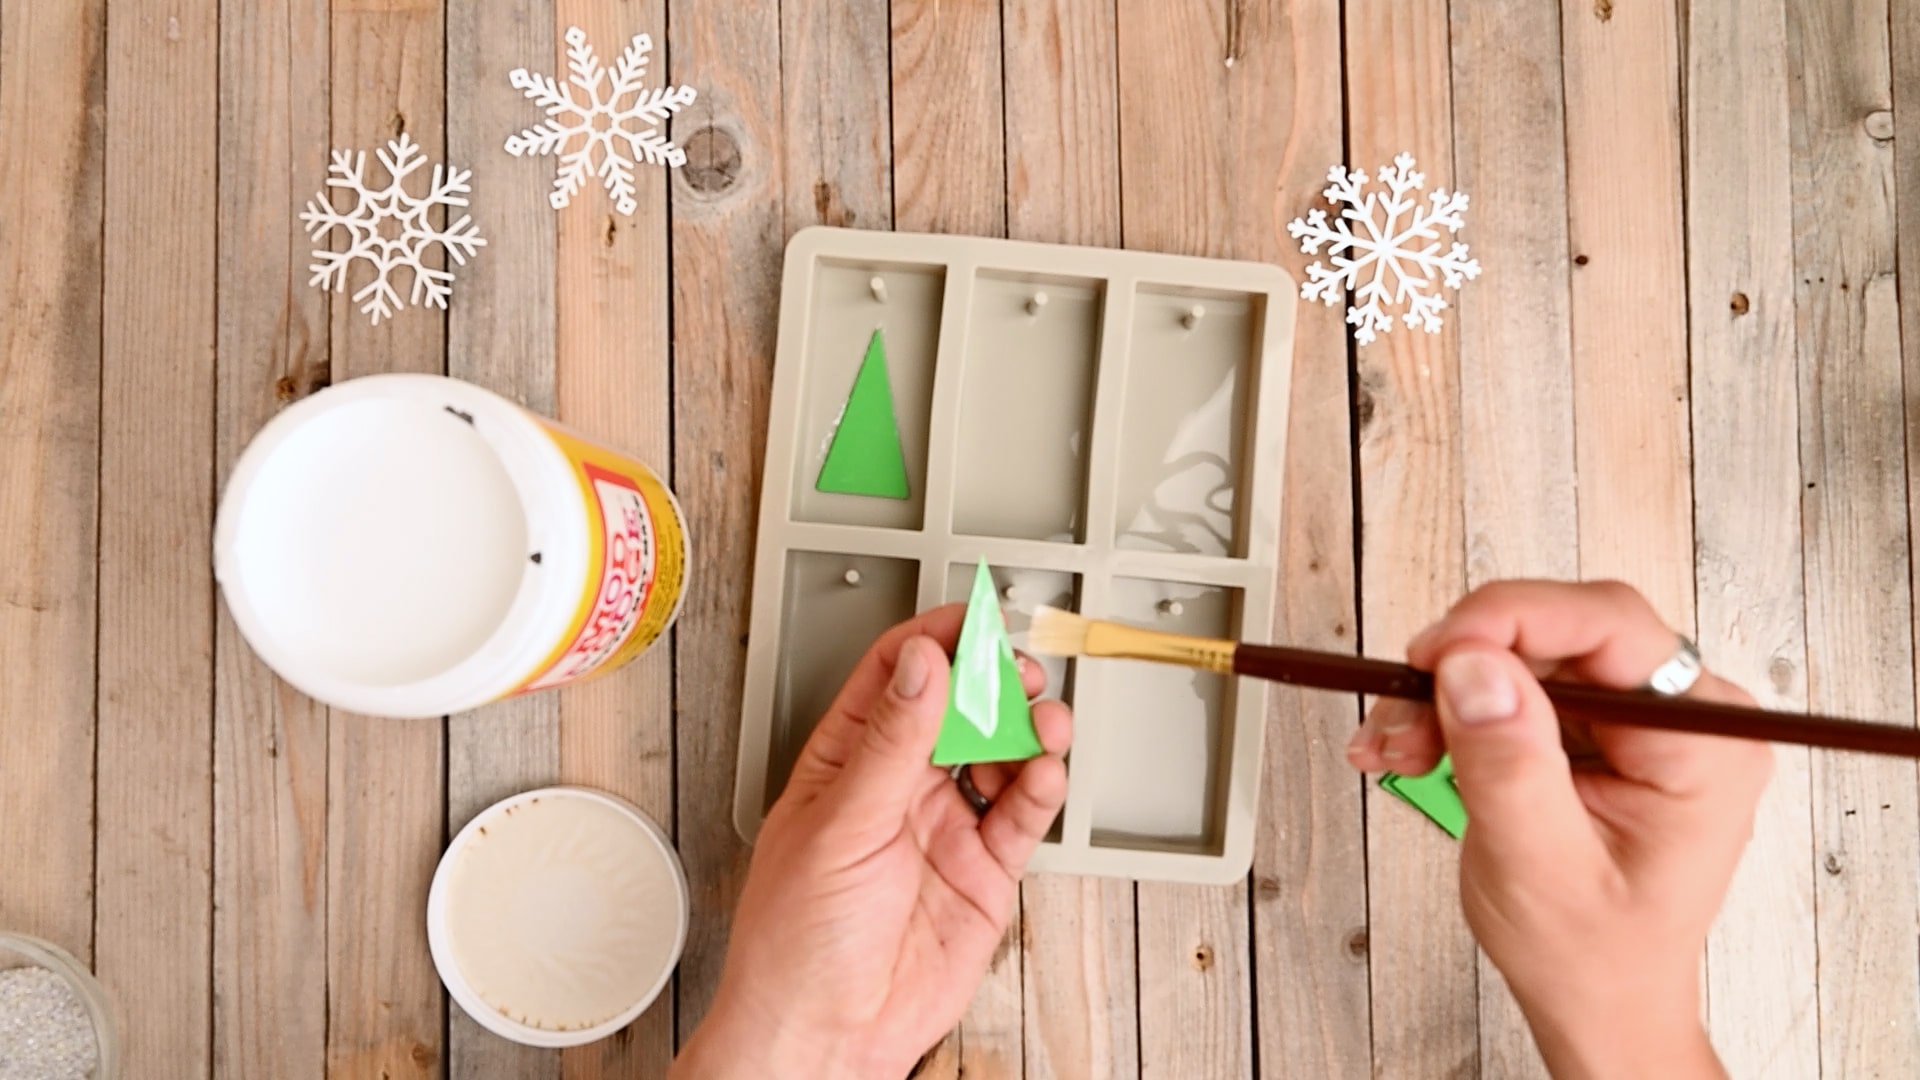 Use a paintbrush to coat one side of each triangle with glue. Stick them down inside the molds.